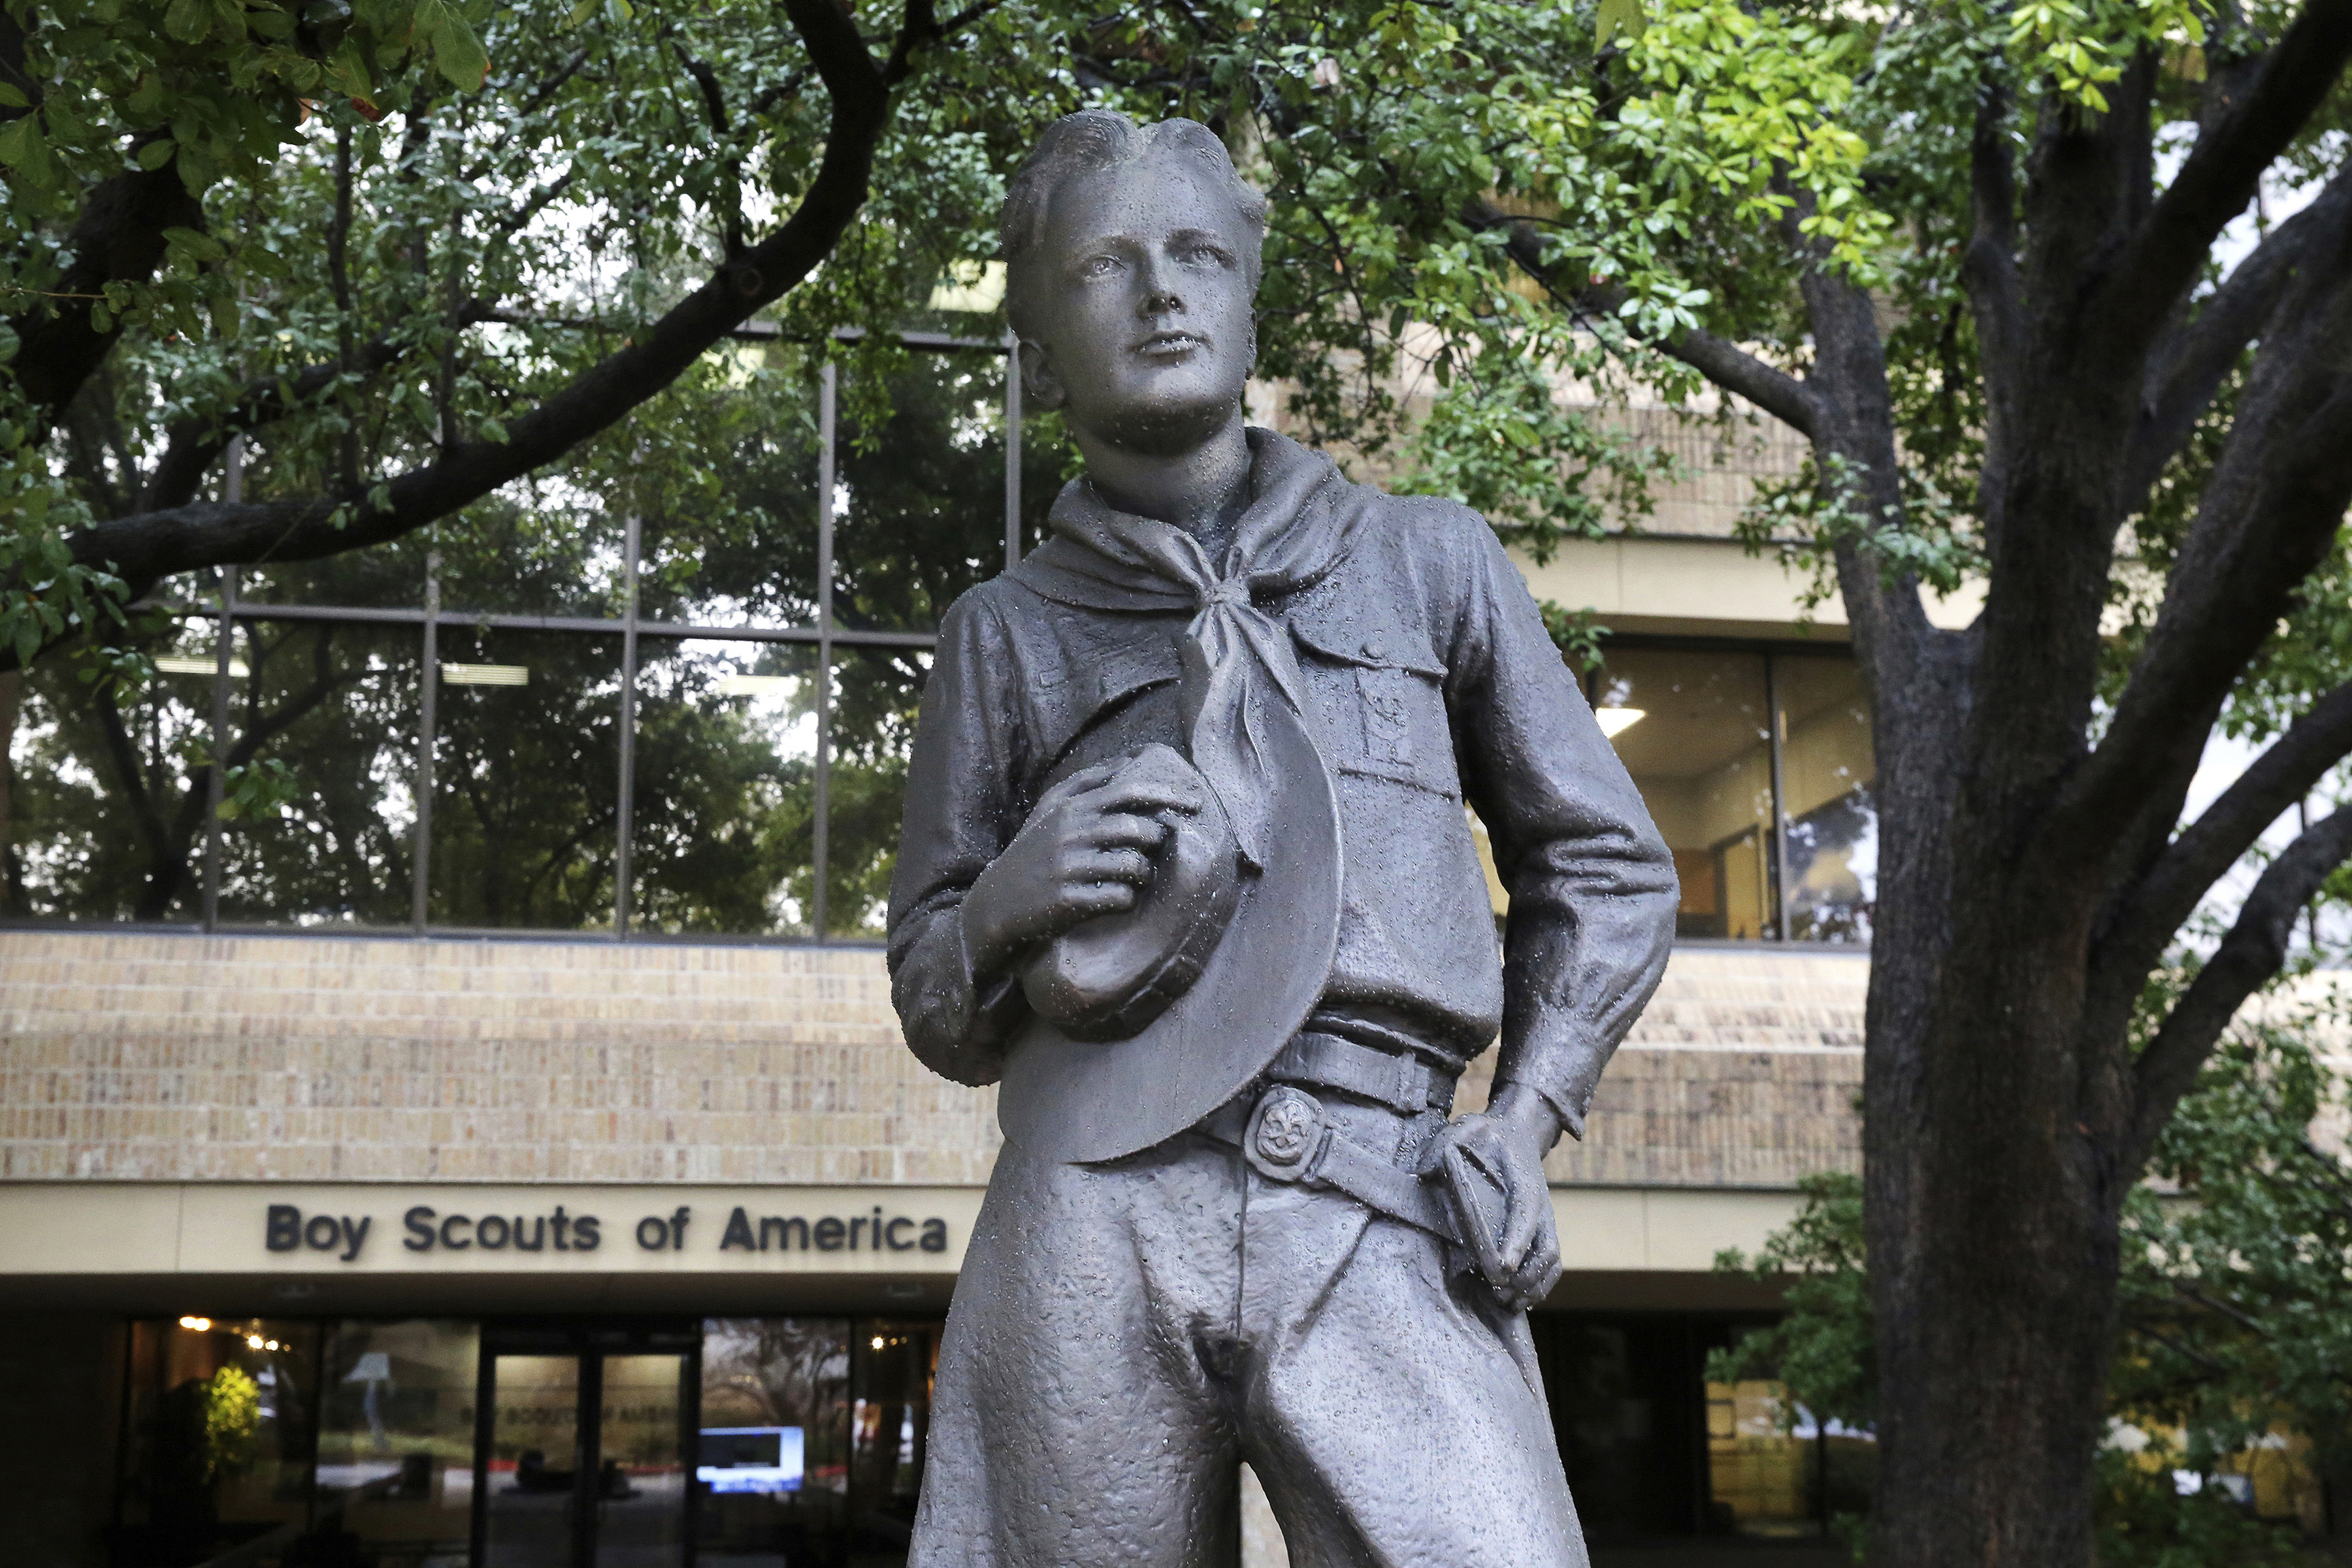 In this Feb. 12, 2020 file photo, a statue stands outside the Boy Scouts of America headquarters in Irving, Texas. The Boy Scouts of America have reached an agreement with attorneys representing some 60,000 victims of child sex abuse in what could prove to be a pivotal moment in the organization's bankruptcy case. Attorneys for the BSA filed court papers late Thursday, July 1, 2021 outlining a restructuring support agreement, or RSA, with attorneys representing abuse victims.